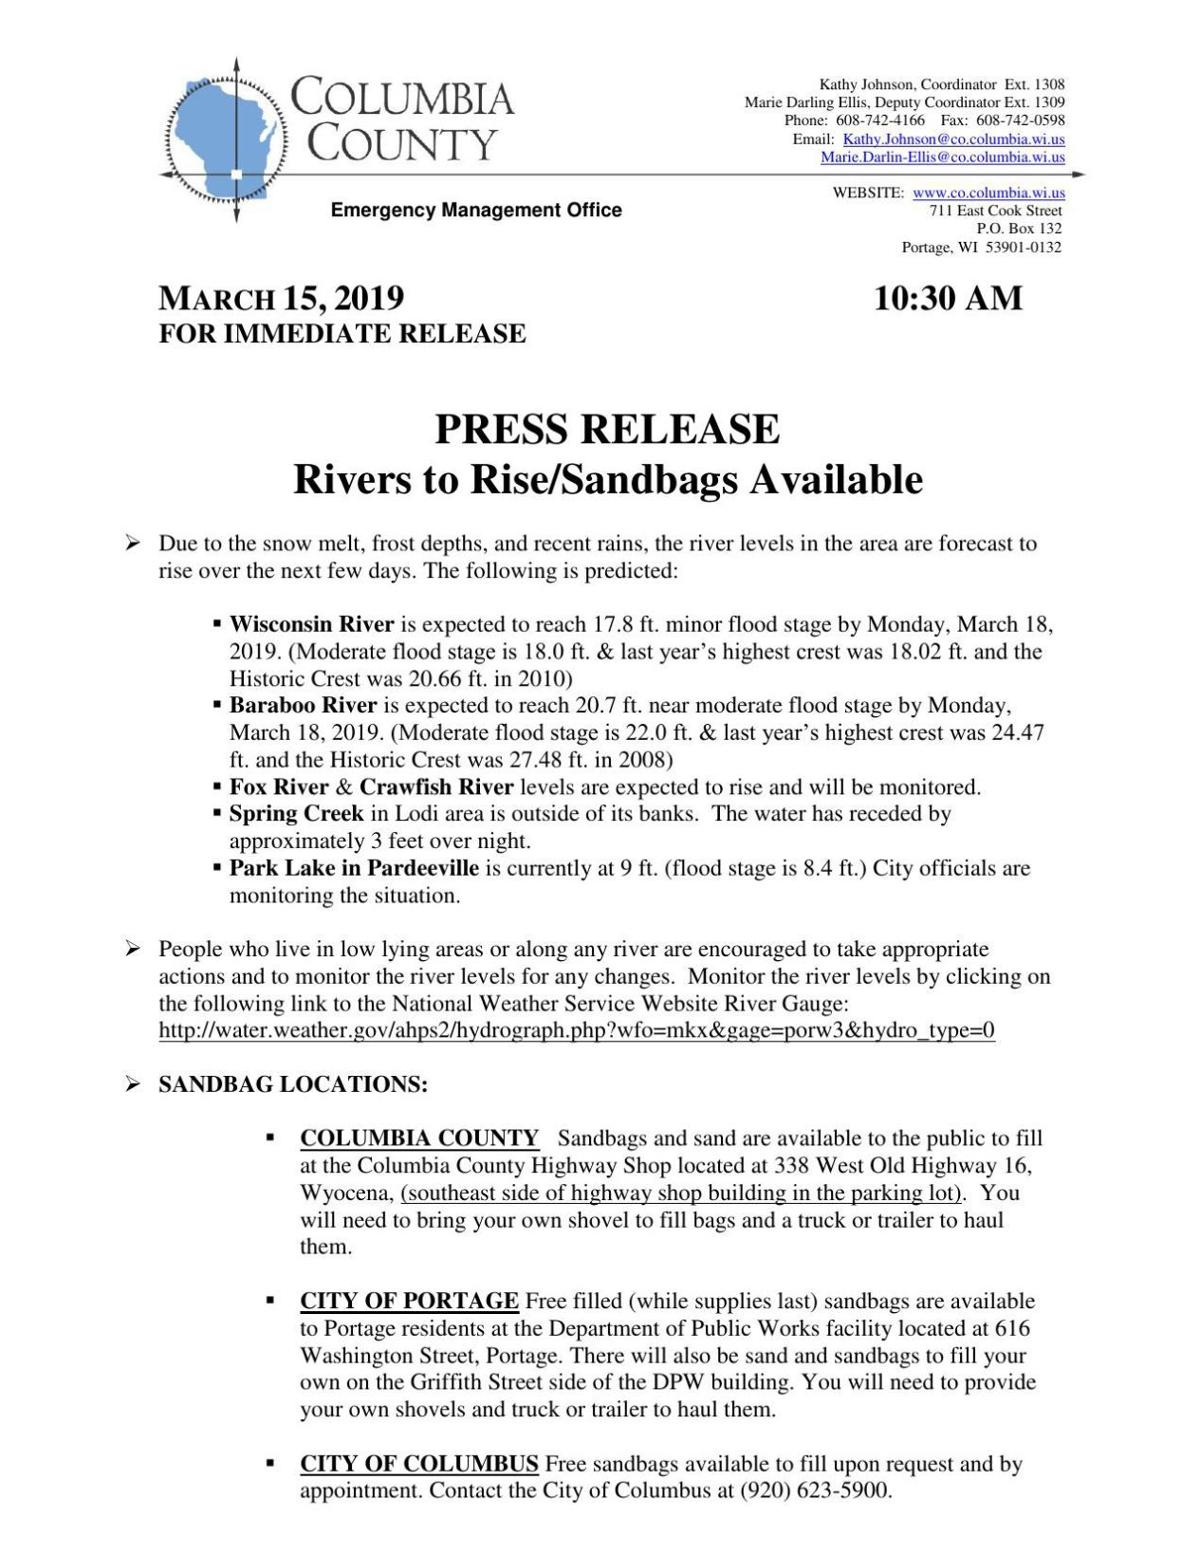 Friday, March 15, 2019 Flooding Release